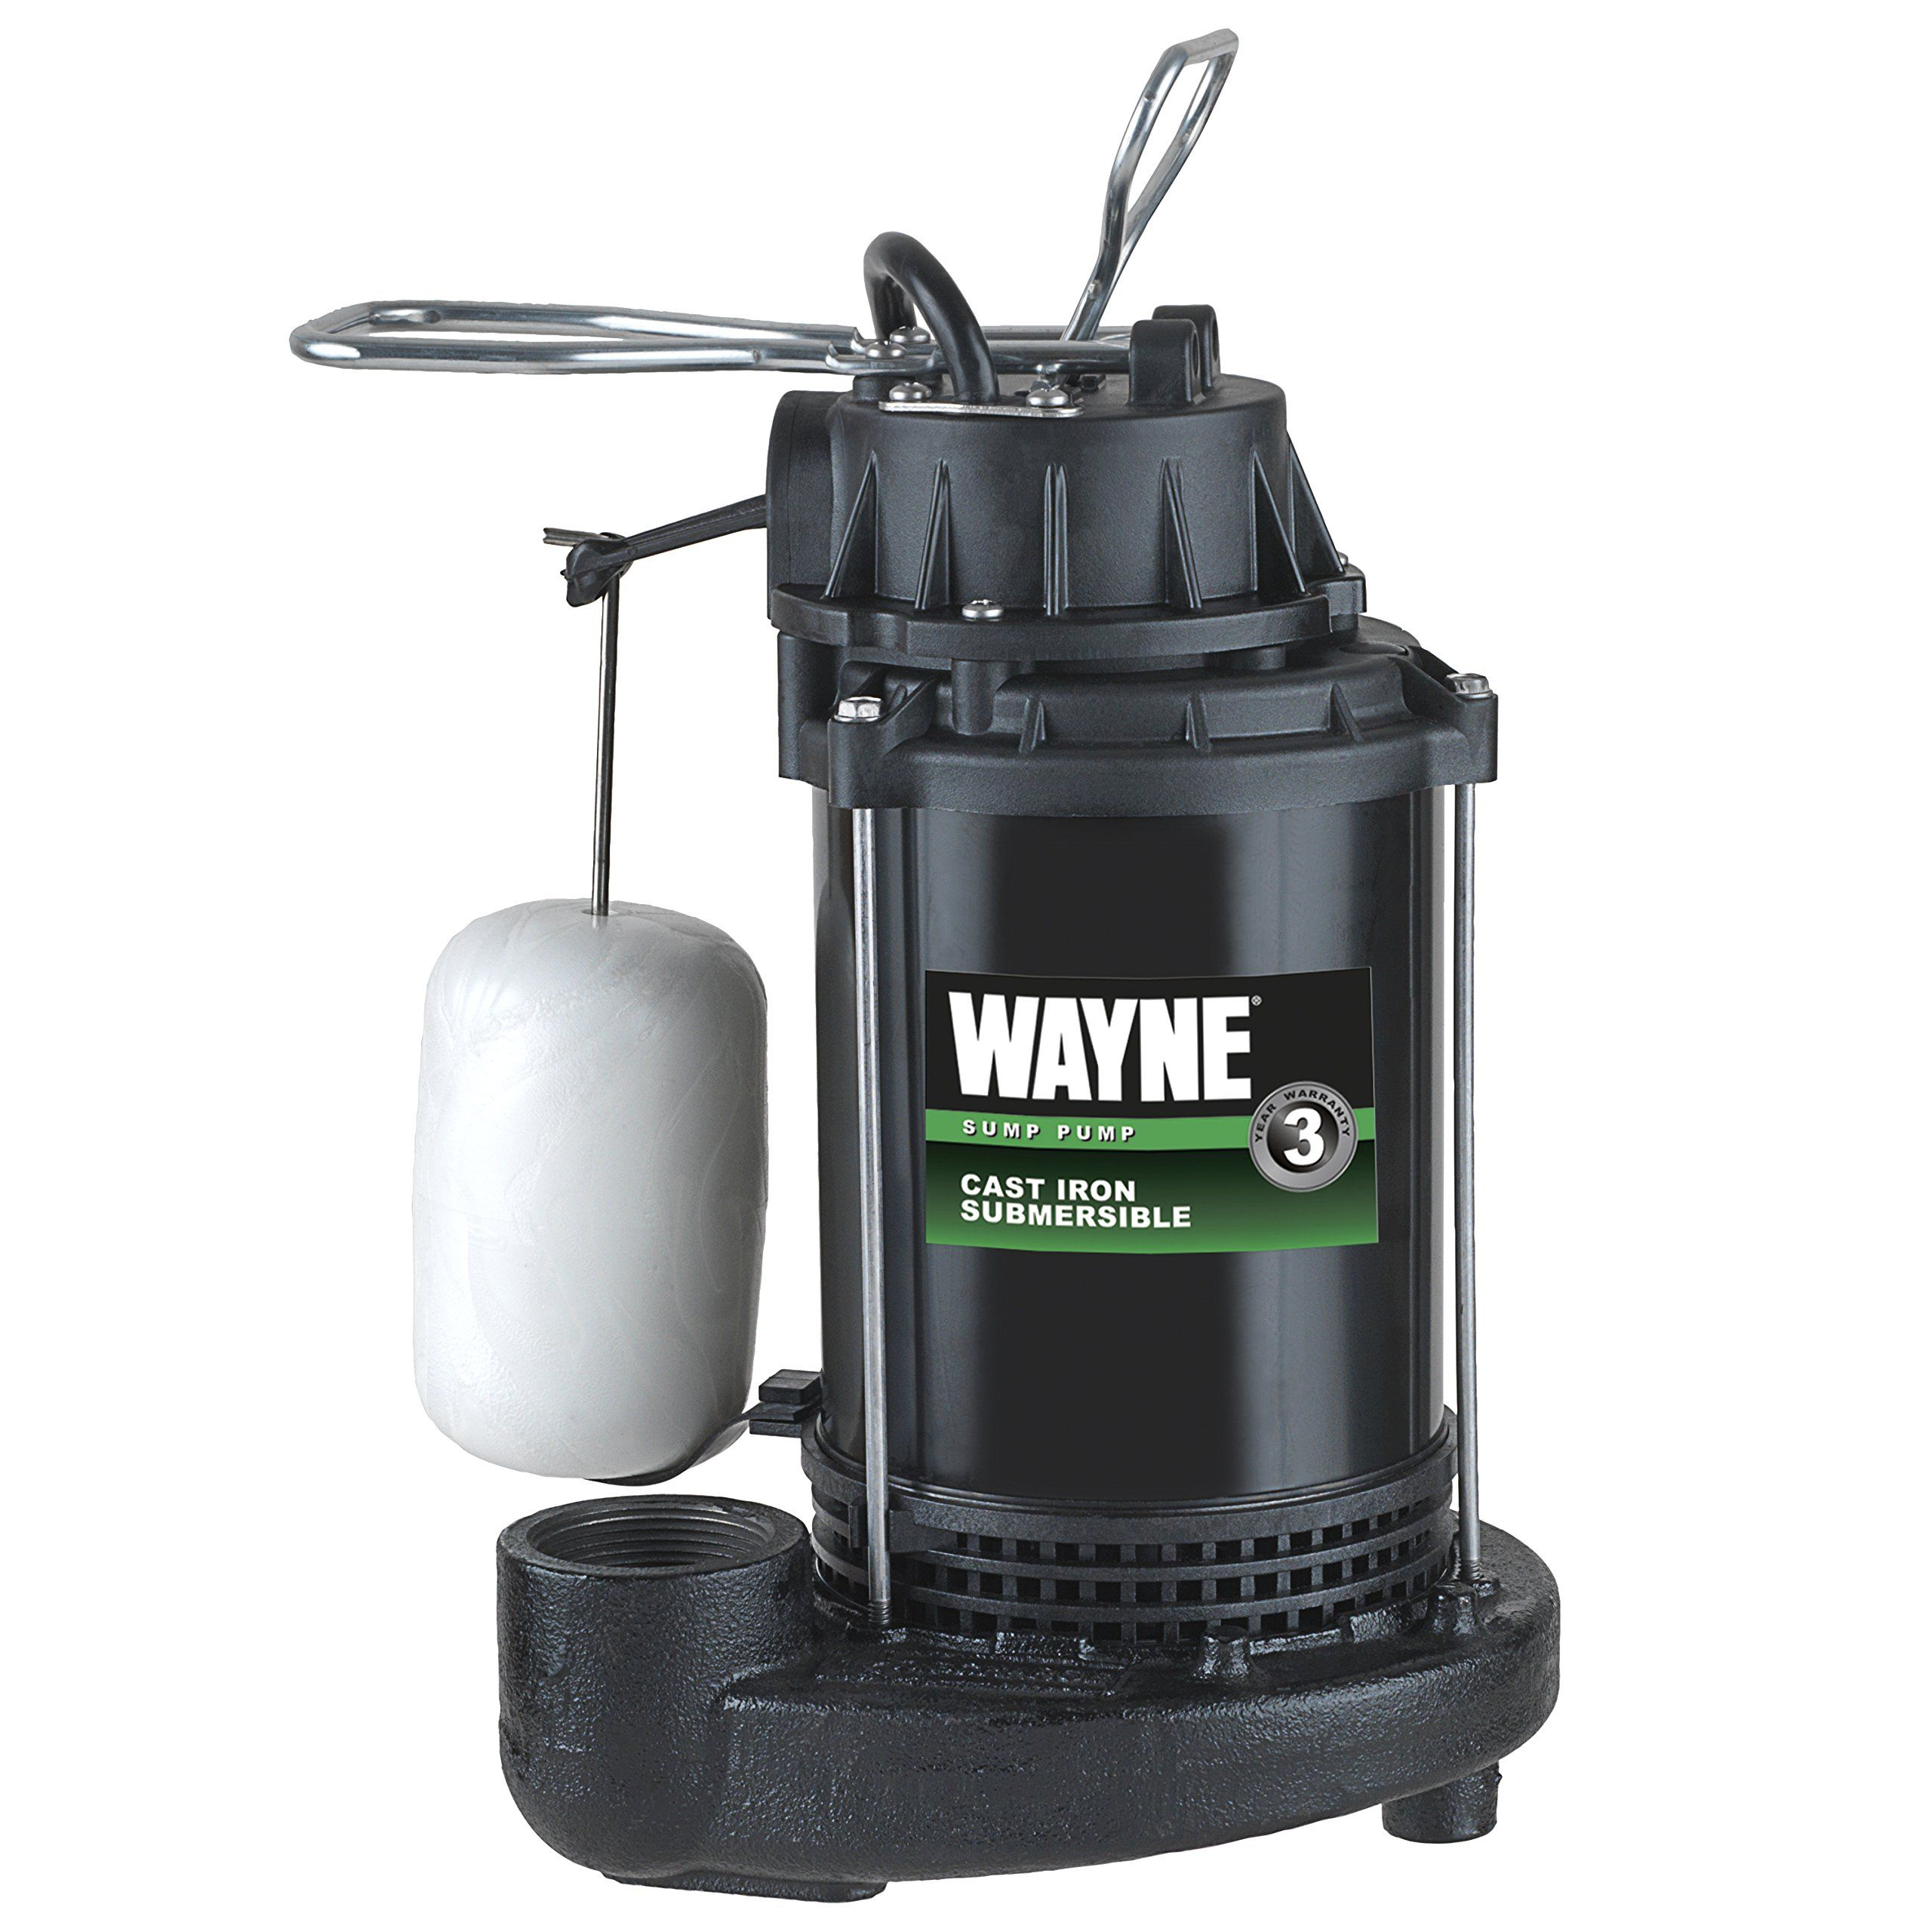 Wayne Cdu790 1 3 Hp Submersible Cast Iron And Steel Sump Pump With Integrated Vertical Float Switch Read More At The Im In 2020 Submersible Sump Pump Sump Pump Sump